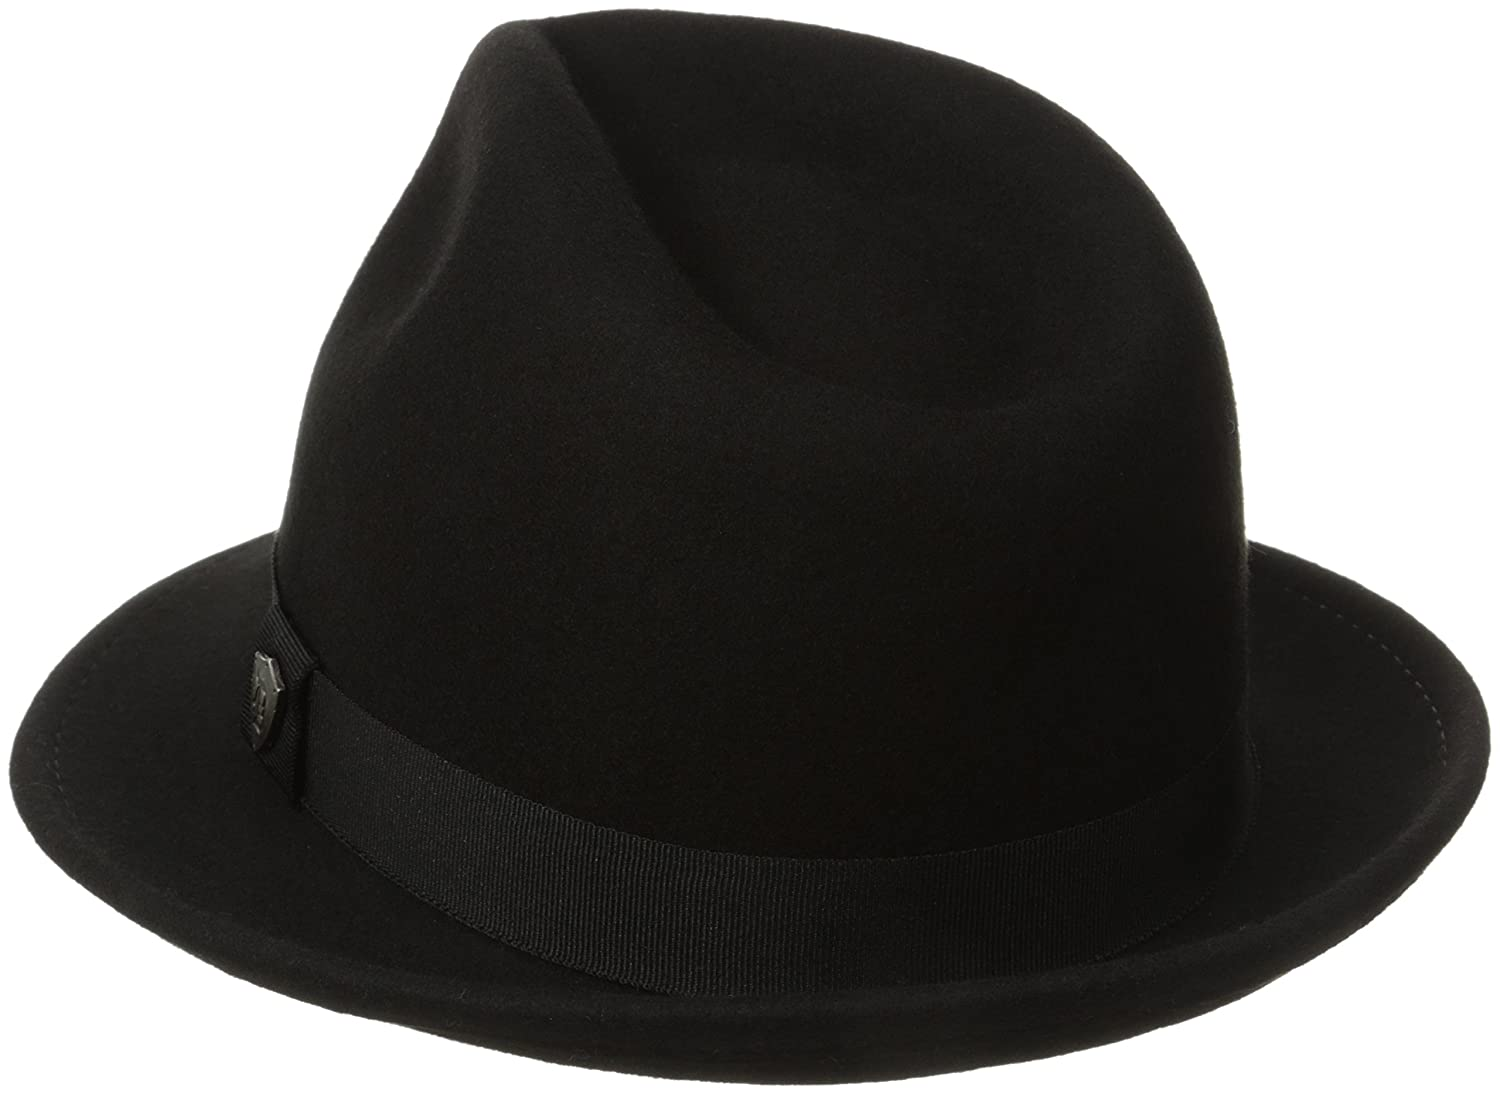 1920s Gangster Costume- How to Dress Like Al Capone Dorfman Wool Felt Hat $44.95 AT vintagedancer.com